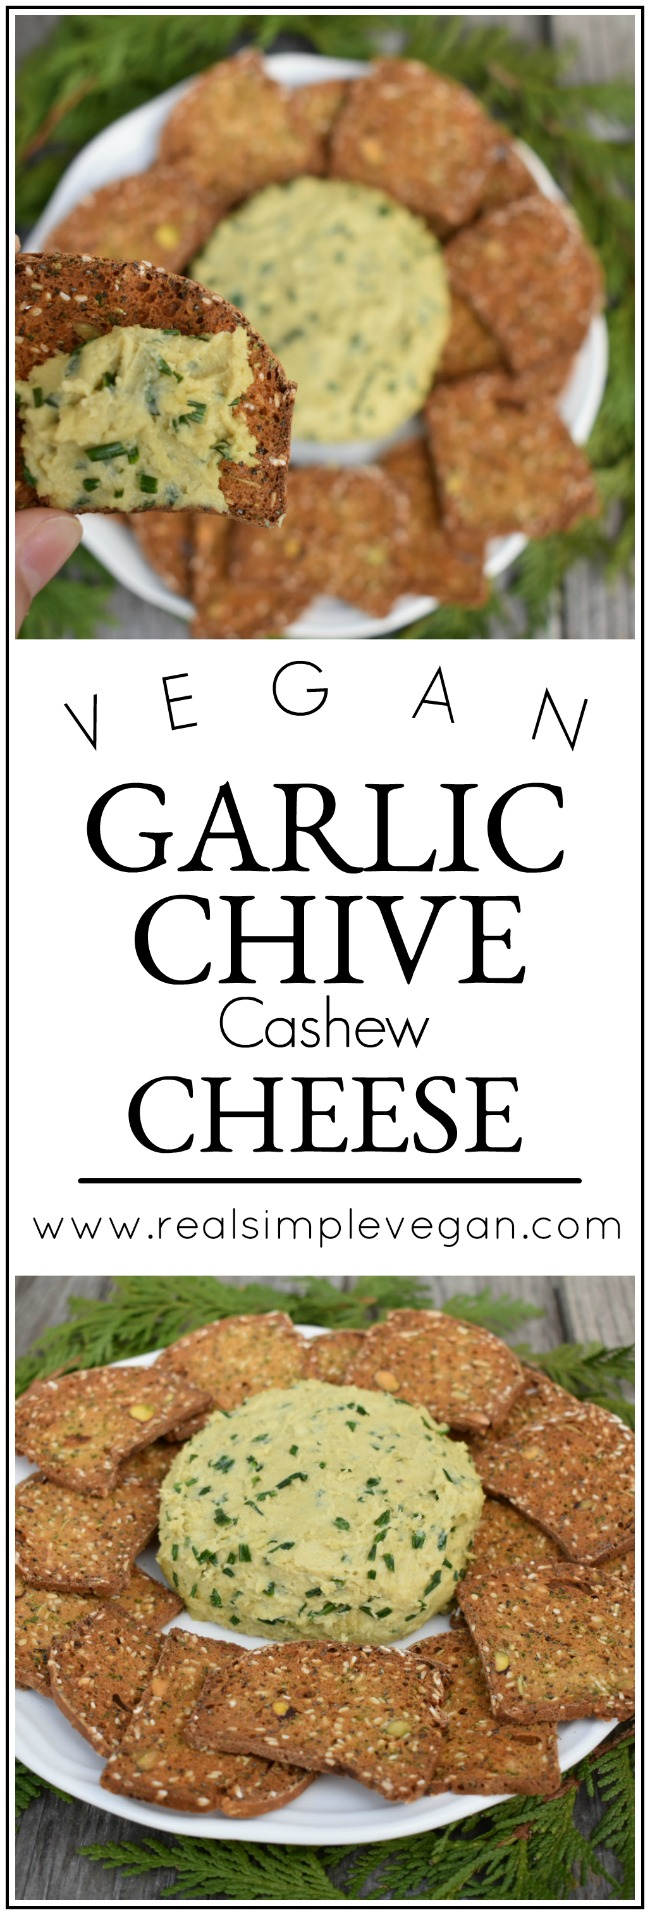 Garlic Chive Cashew Cheese | Real. Simple. Vegan.